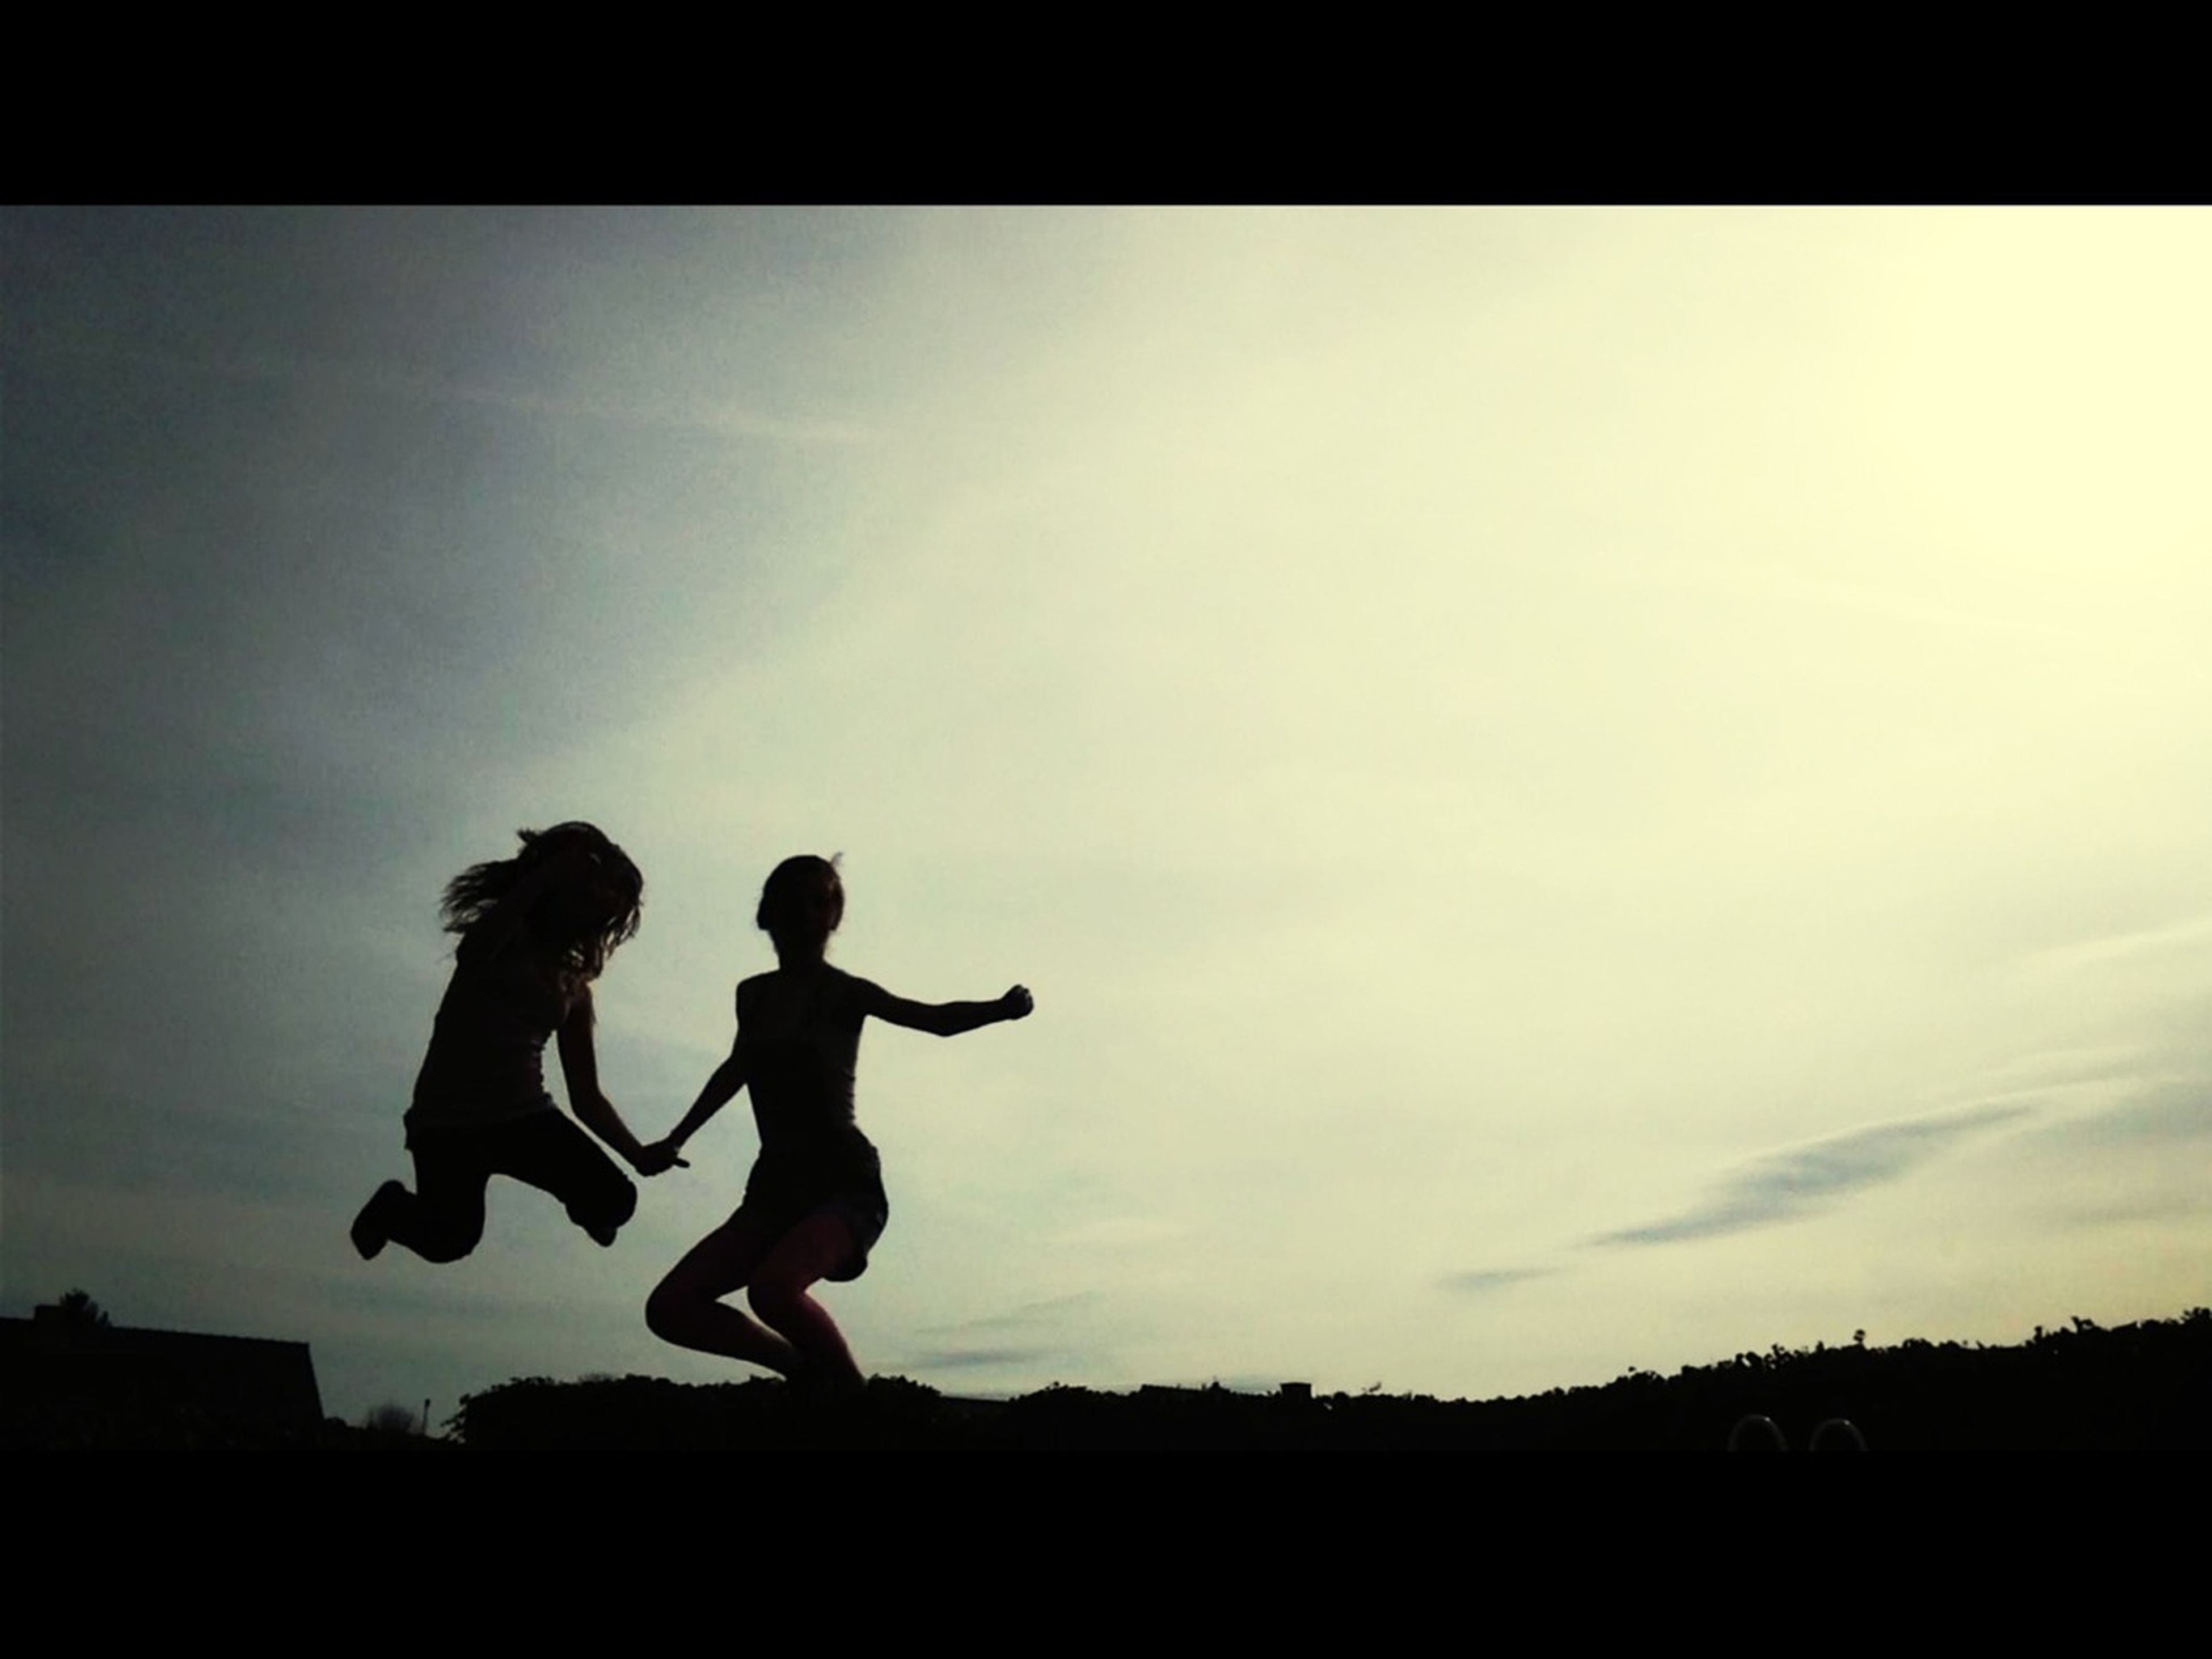 silhouette, full length, sky, lifestyles, leisure activity, transfer print, men, auto post production filter, low angle view, cloud - sky, standing, side view, copy space, childhood, enjoyment, mid-air, arms raised, dusk